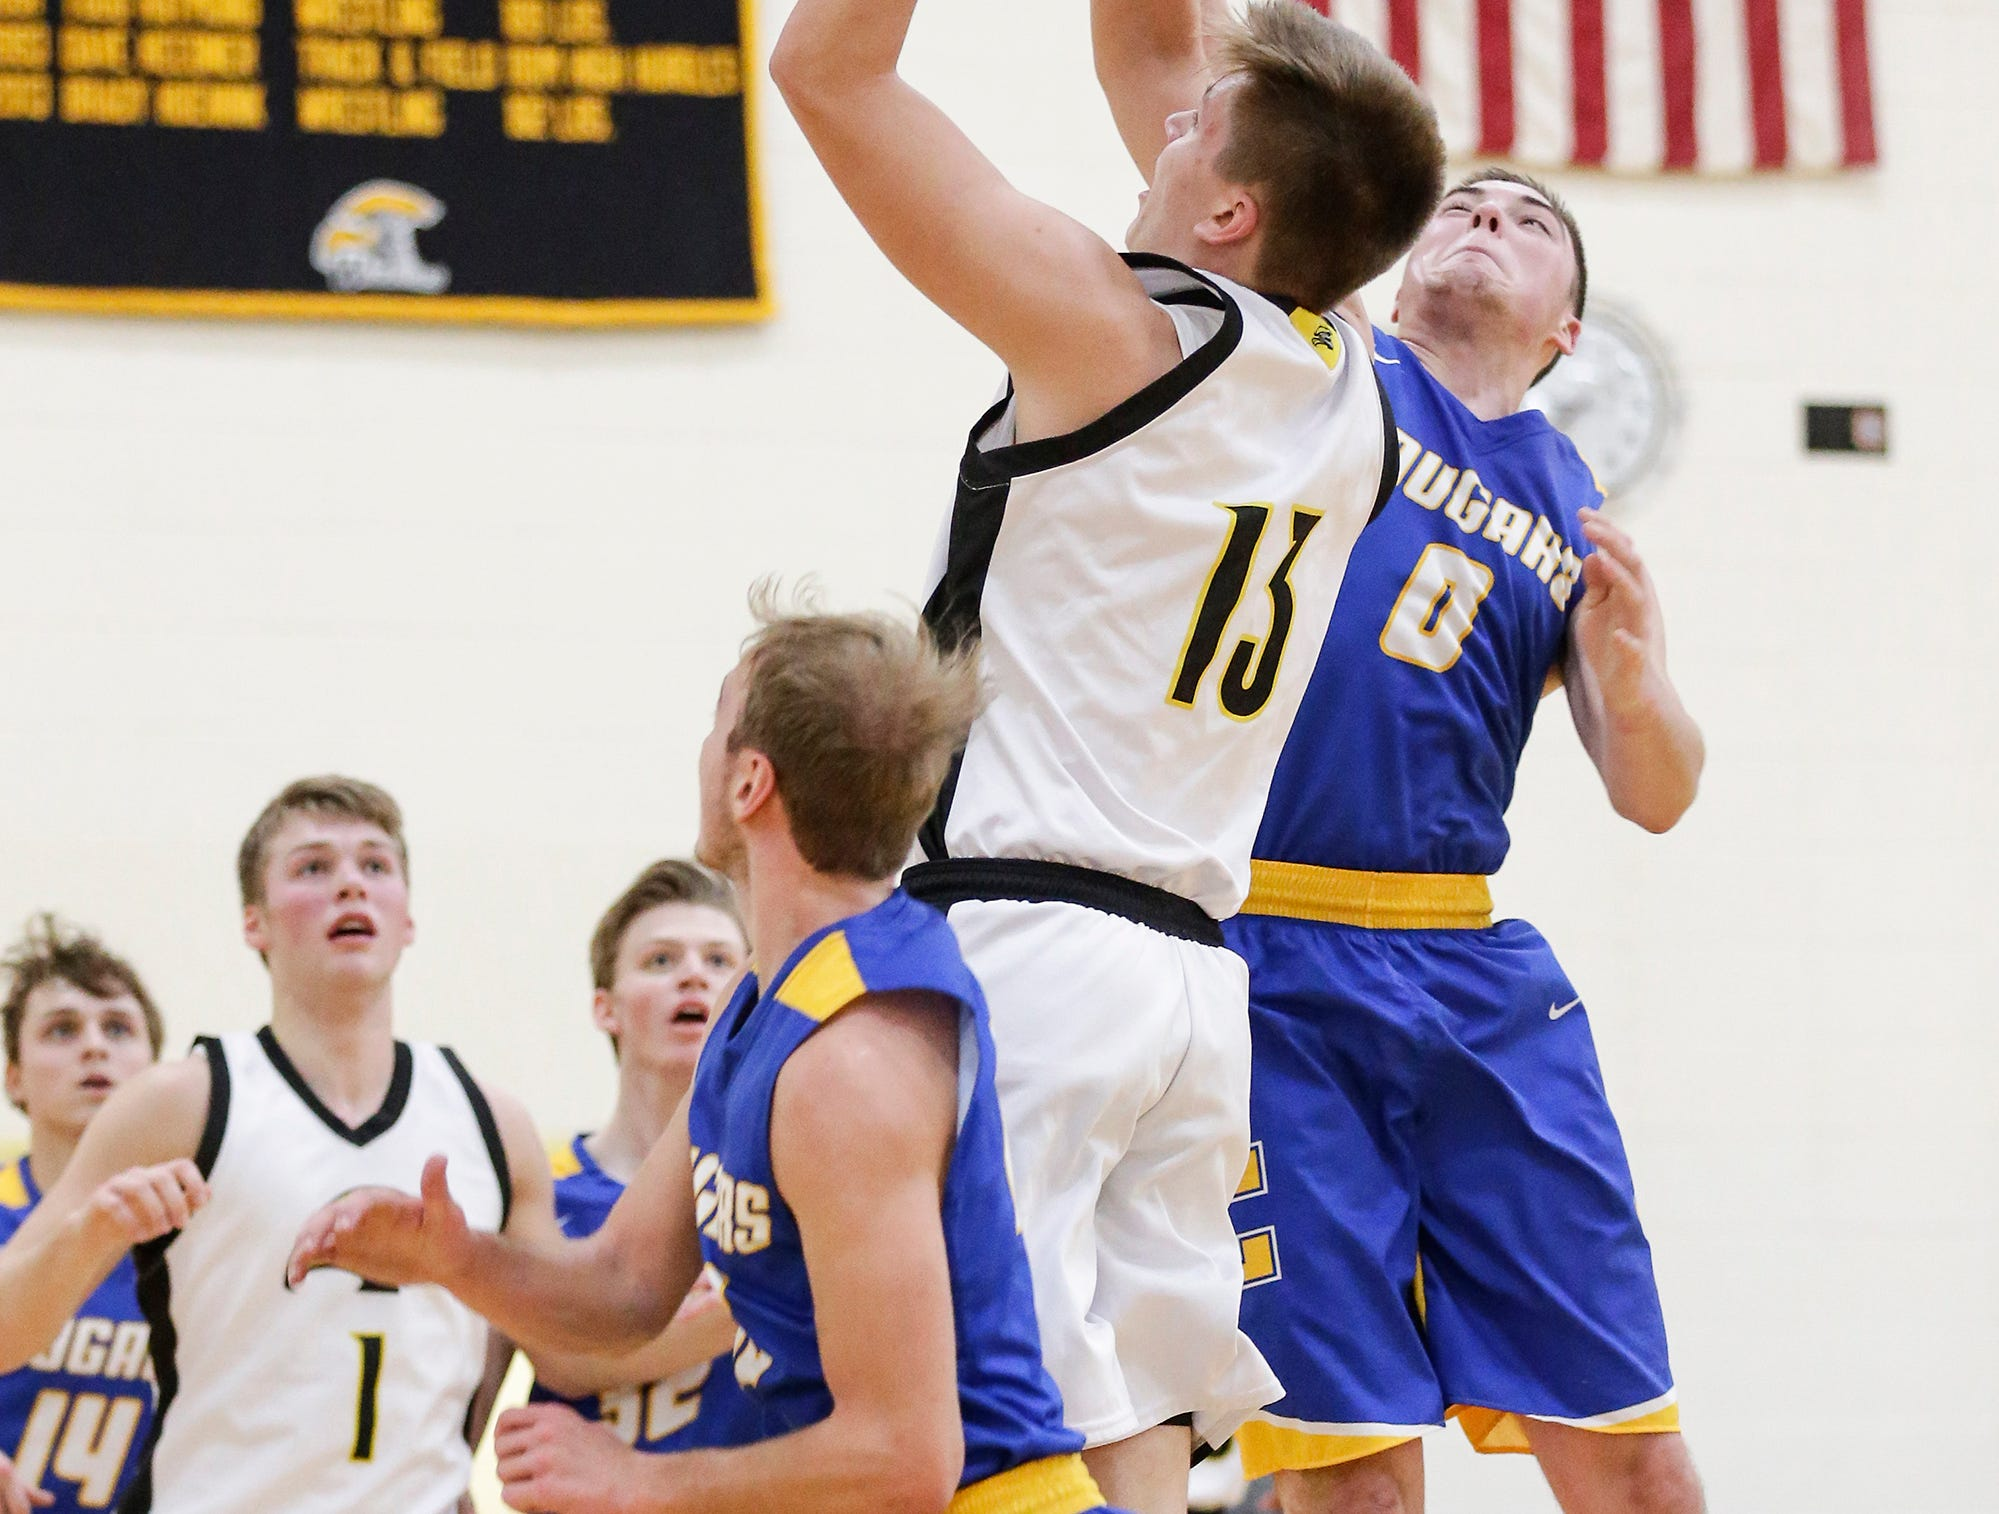 Waupun High School boys basketball's Connor Kamphuis goes up for a basket against Campbellsport High School's Kade Walsh during their game Friday, December 14, 2018 in Waupun. Waupun won the game 64-33. Doug Raflik/USA TODAY NETWORK-Wisconsin